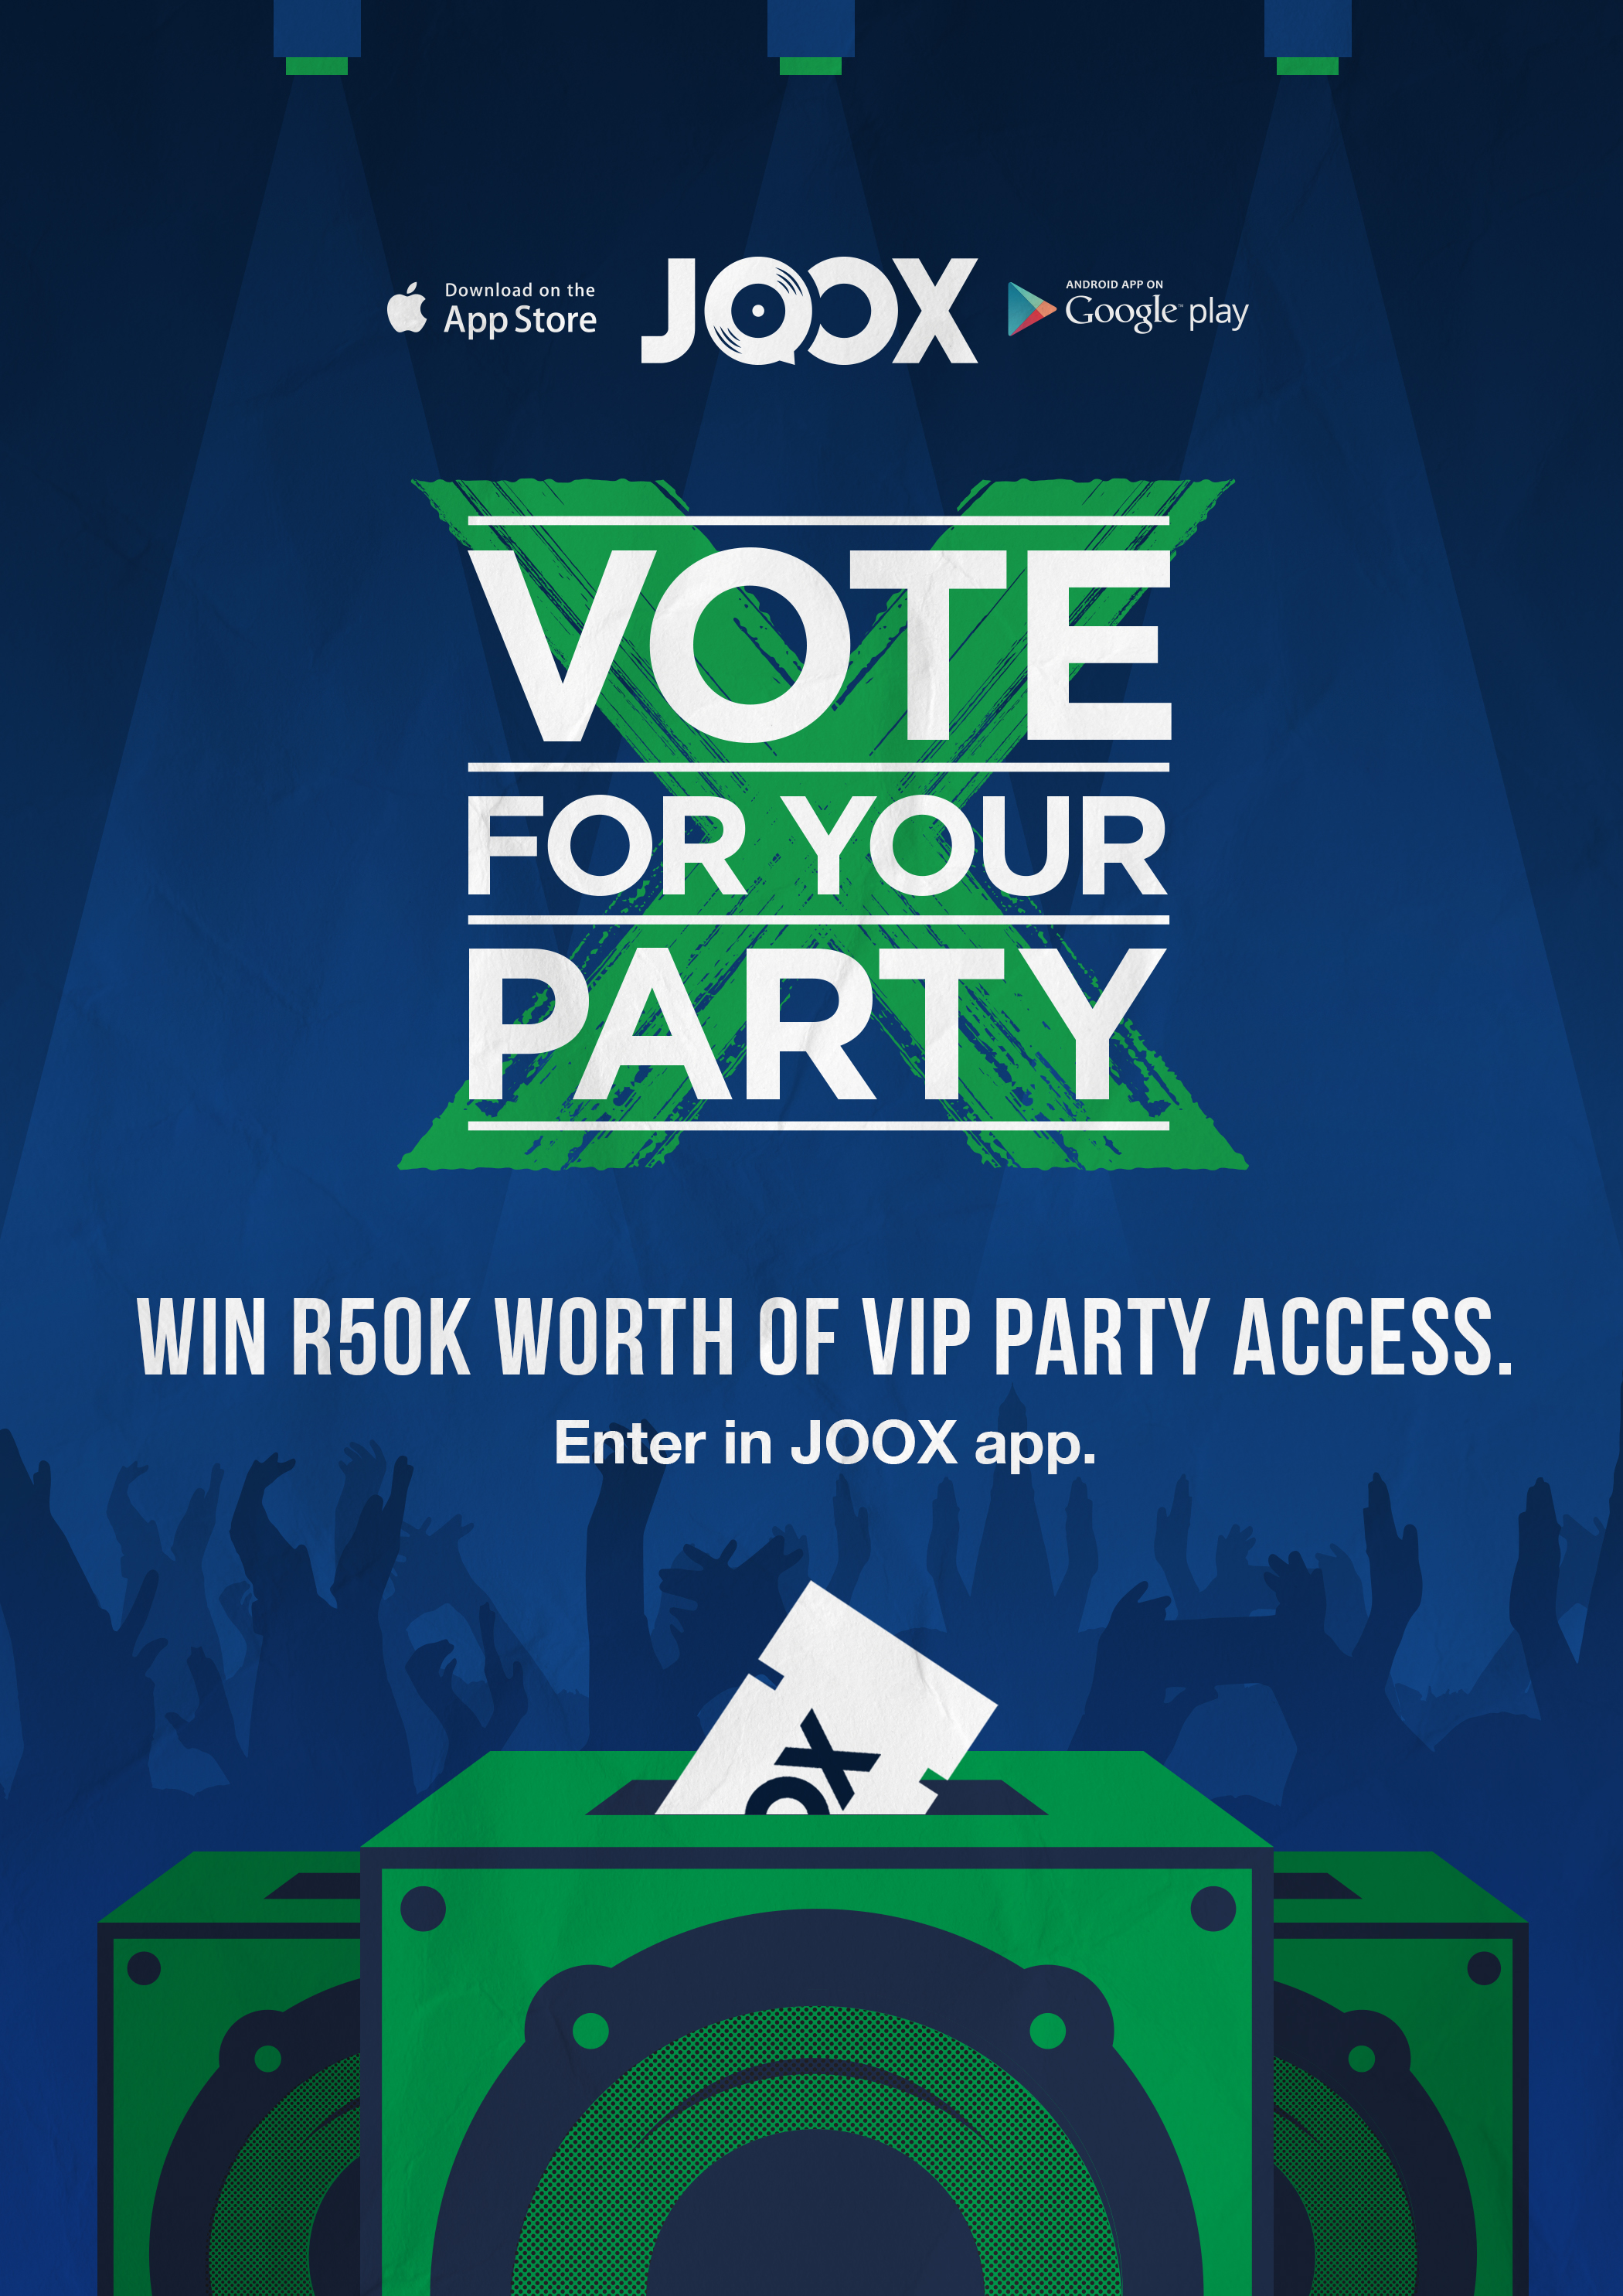 joox VOTE FOR YOUR PARTY! #VoteJOOX Elections Poster